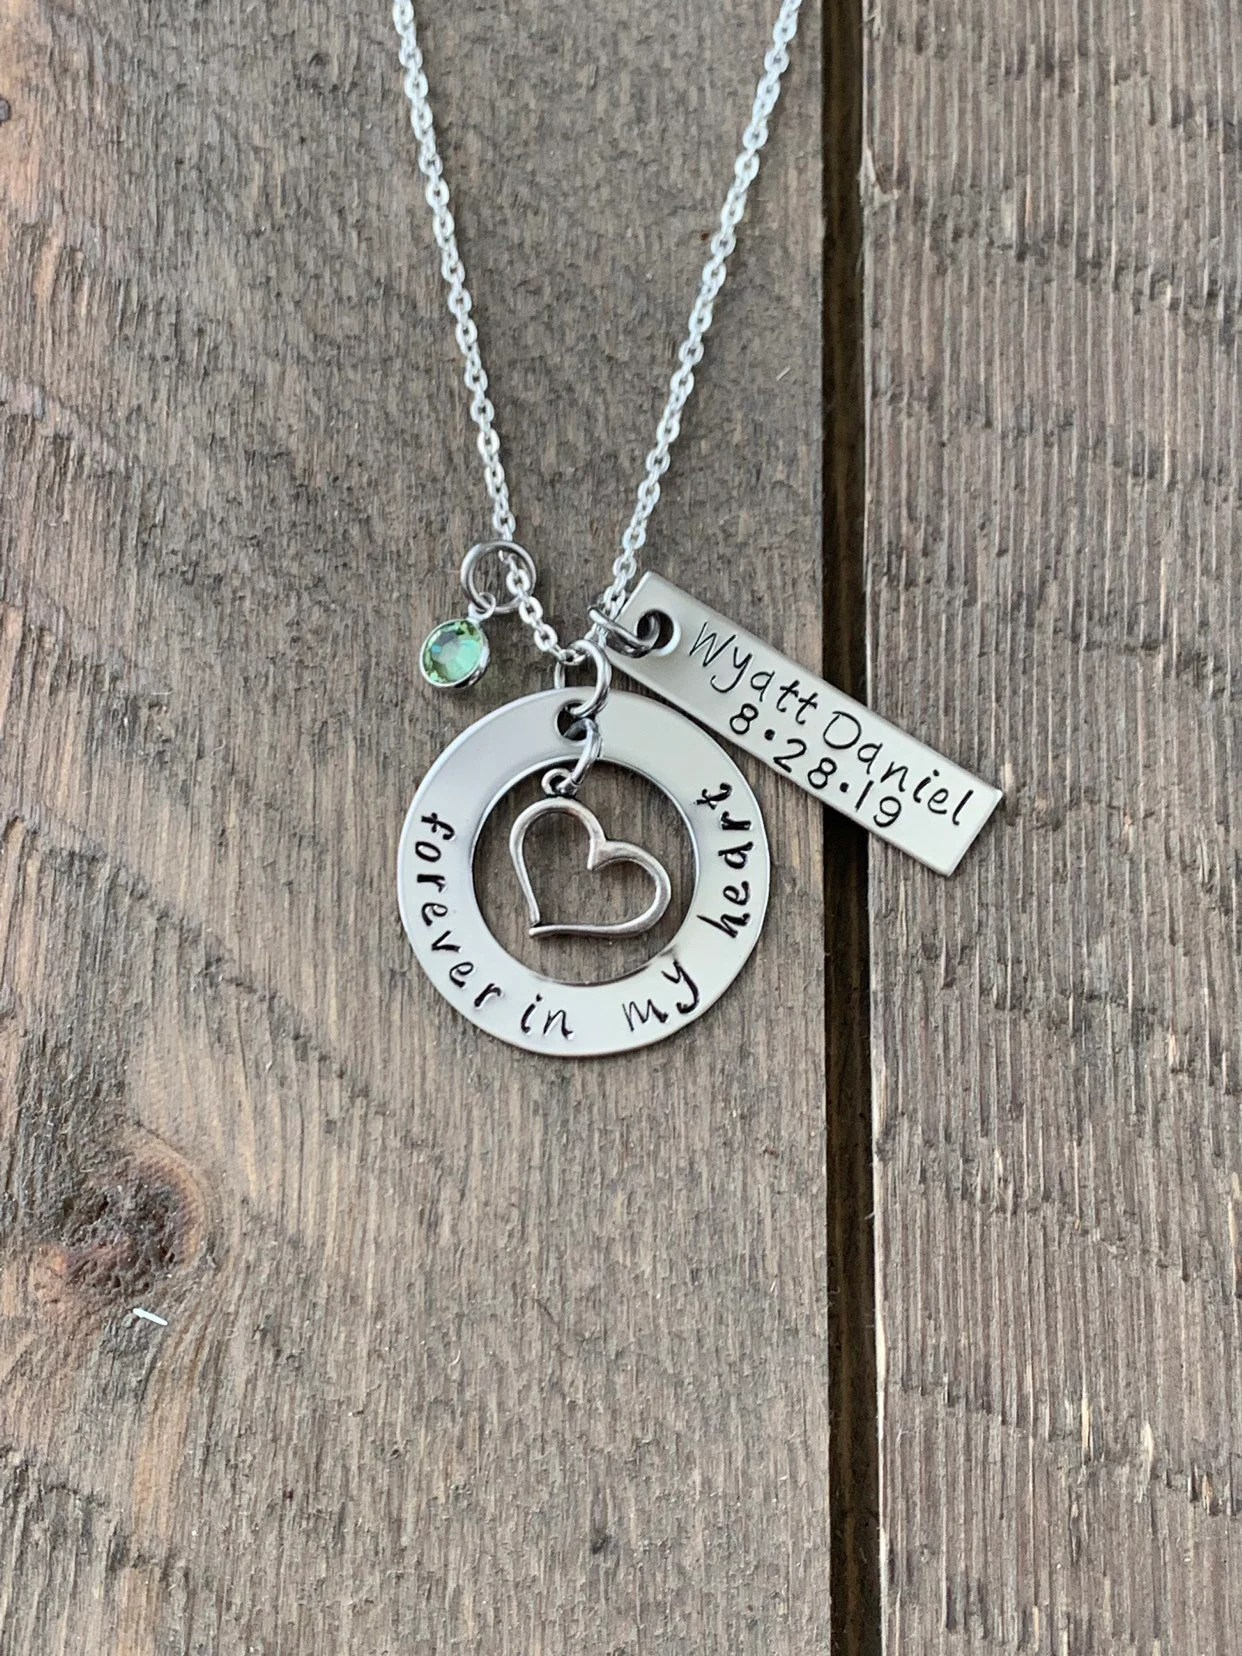 Miscarriage Memorial Jewelry : miscarriage, memorial, jewelry, Memorial, Stamped, Jewelry, Custom